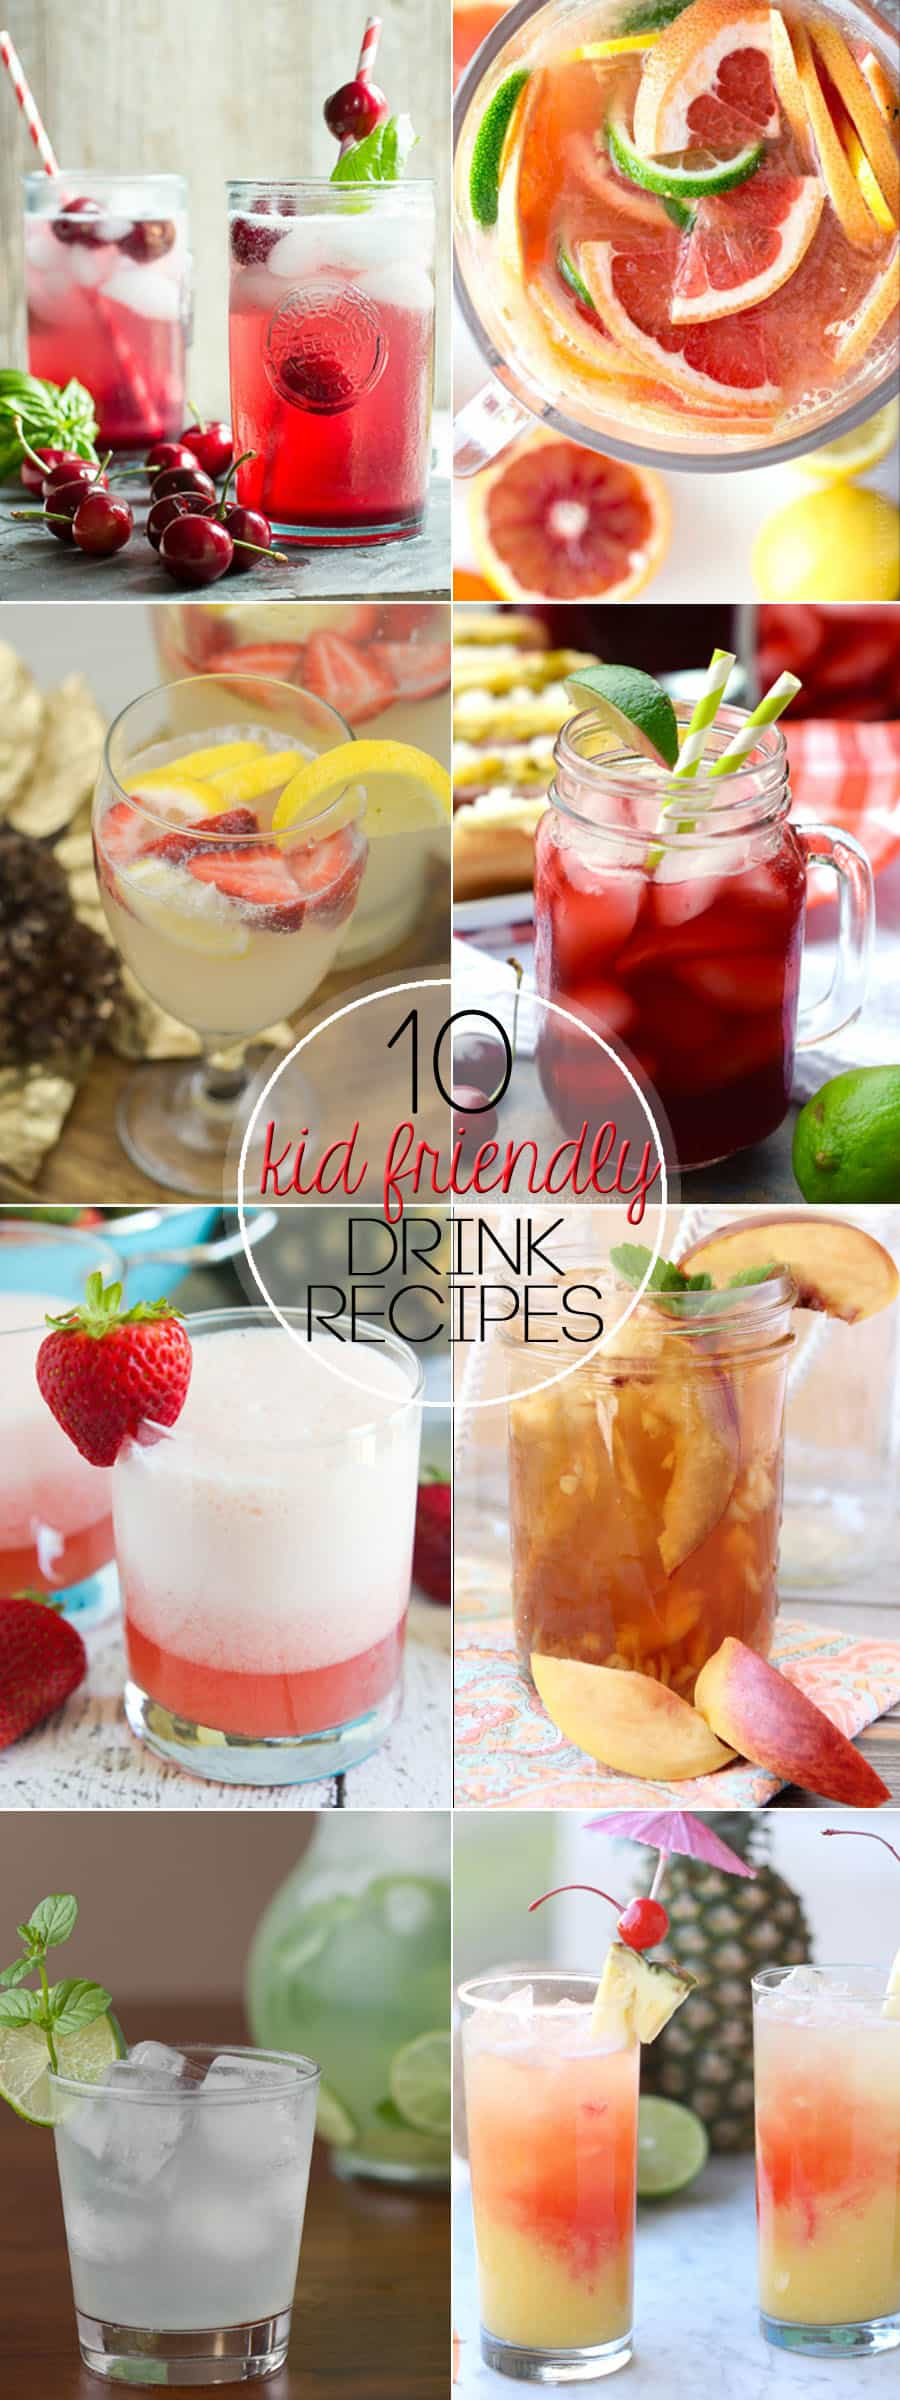 Summer is coming, and warm weather days require delicious beverages the whole family can enjoy. Relax and enjoy these 10 Kid Friendly Drink Recipes!